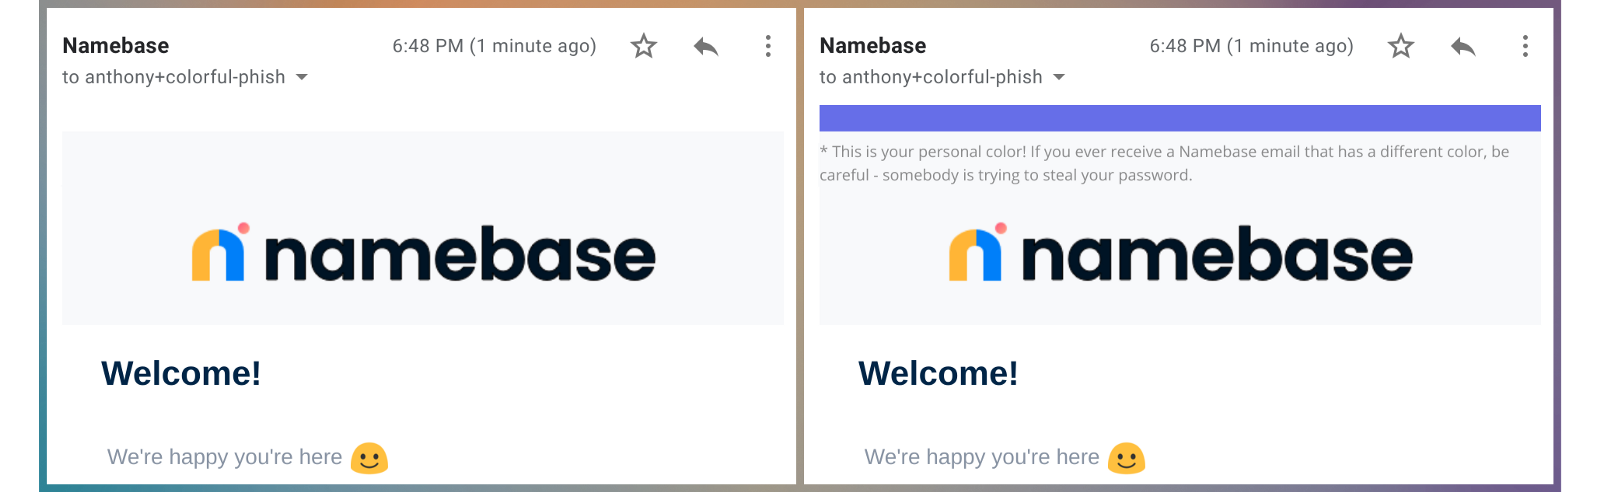 How Color Can Prevent Your Users from Getting Phished - By